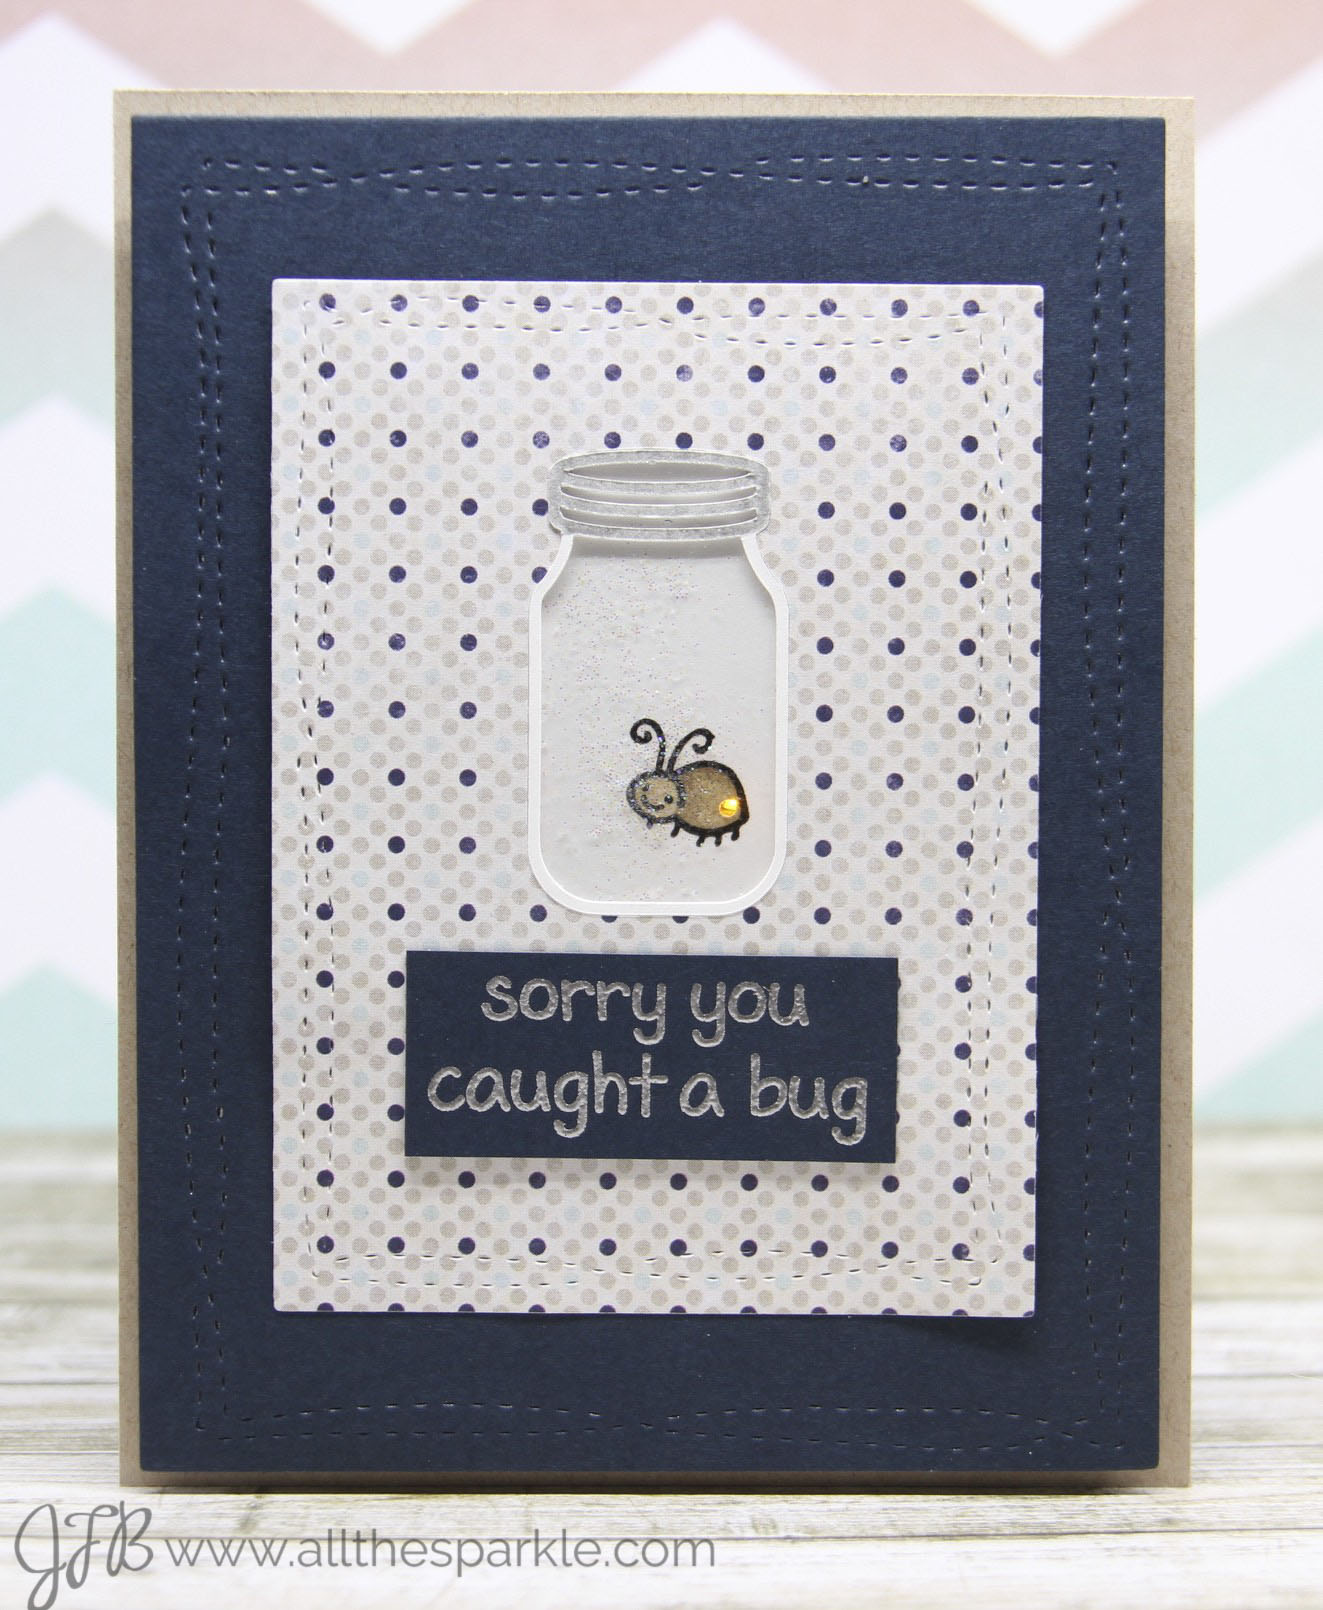 Chibitronics: Sorry You Caught a Bug and a GIVEAWAY!